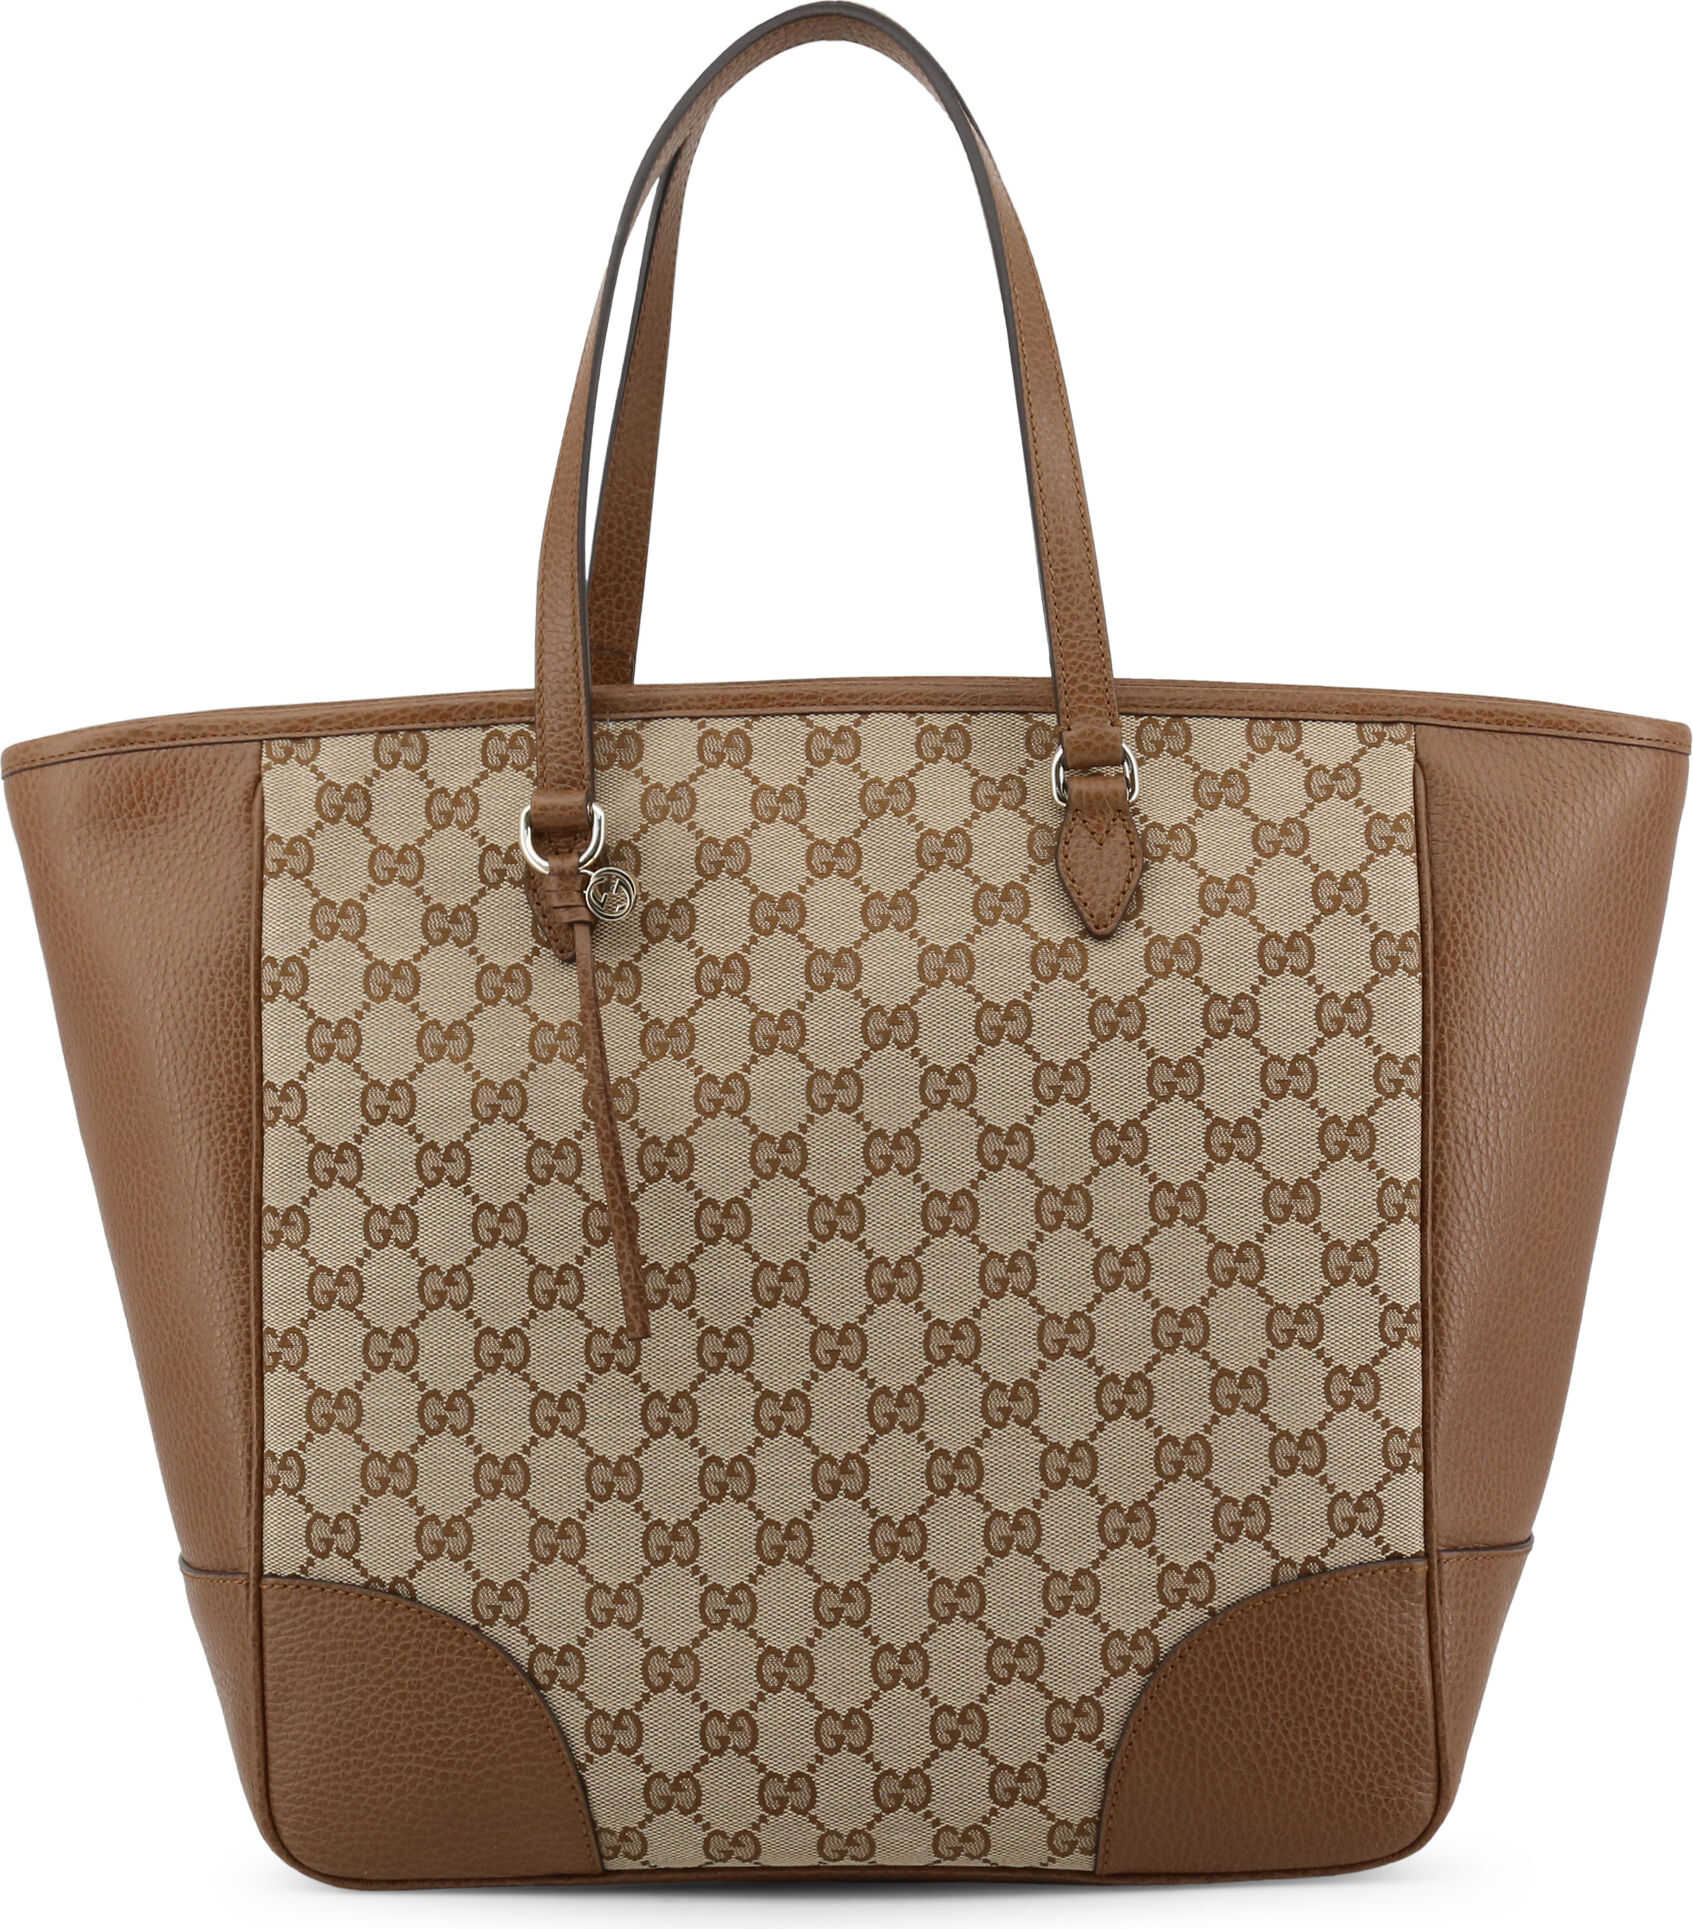 Gucci 449242_Ky9Lg Brown